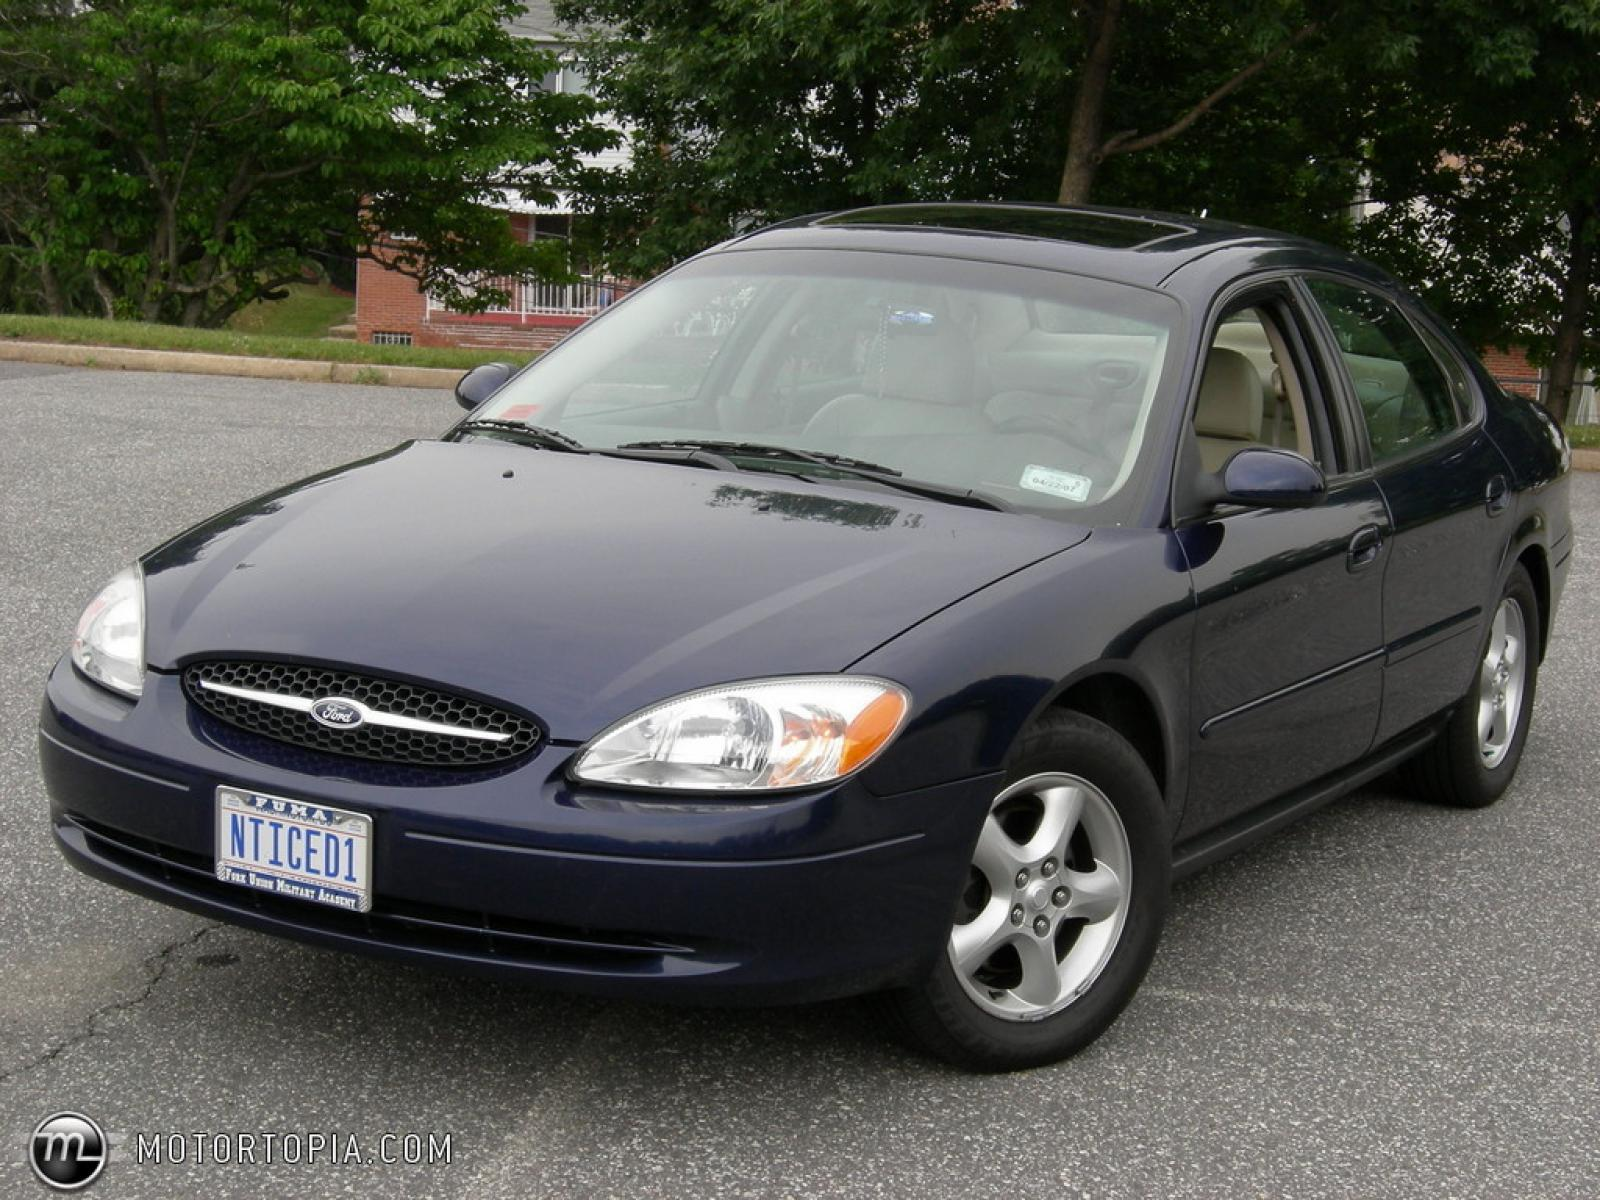 hight resolution of 2001 ford taurus information and photos zombiedrive rh zombdrive com 2003 ford taurus parts diagram 2001